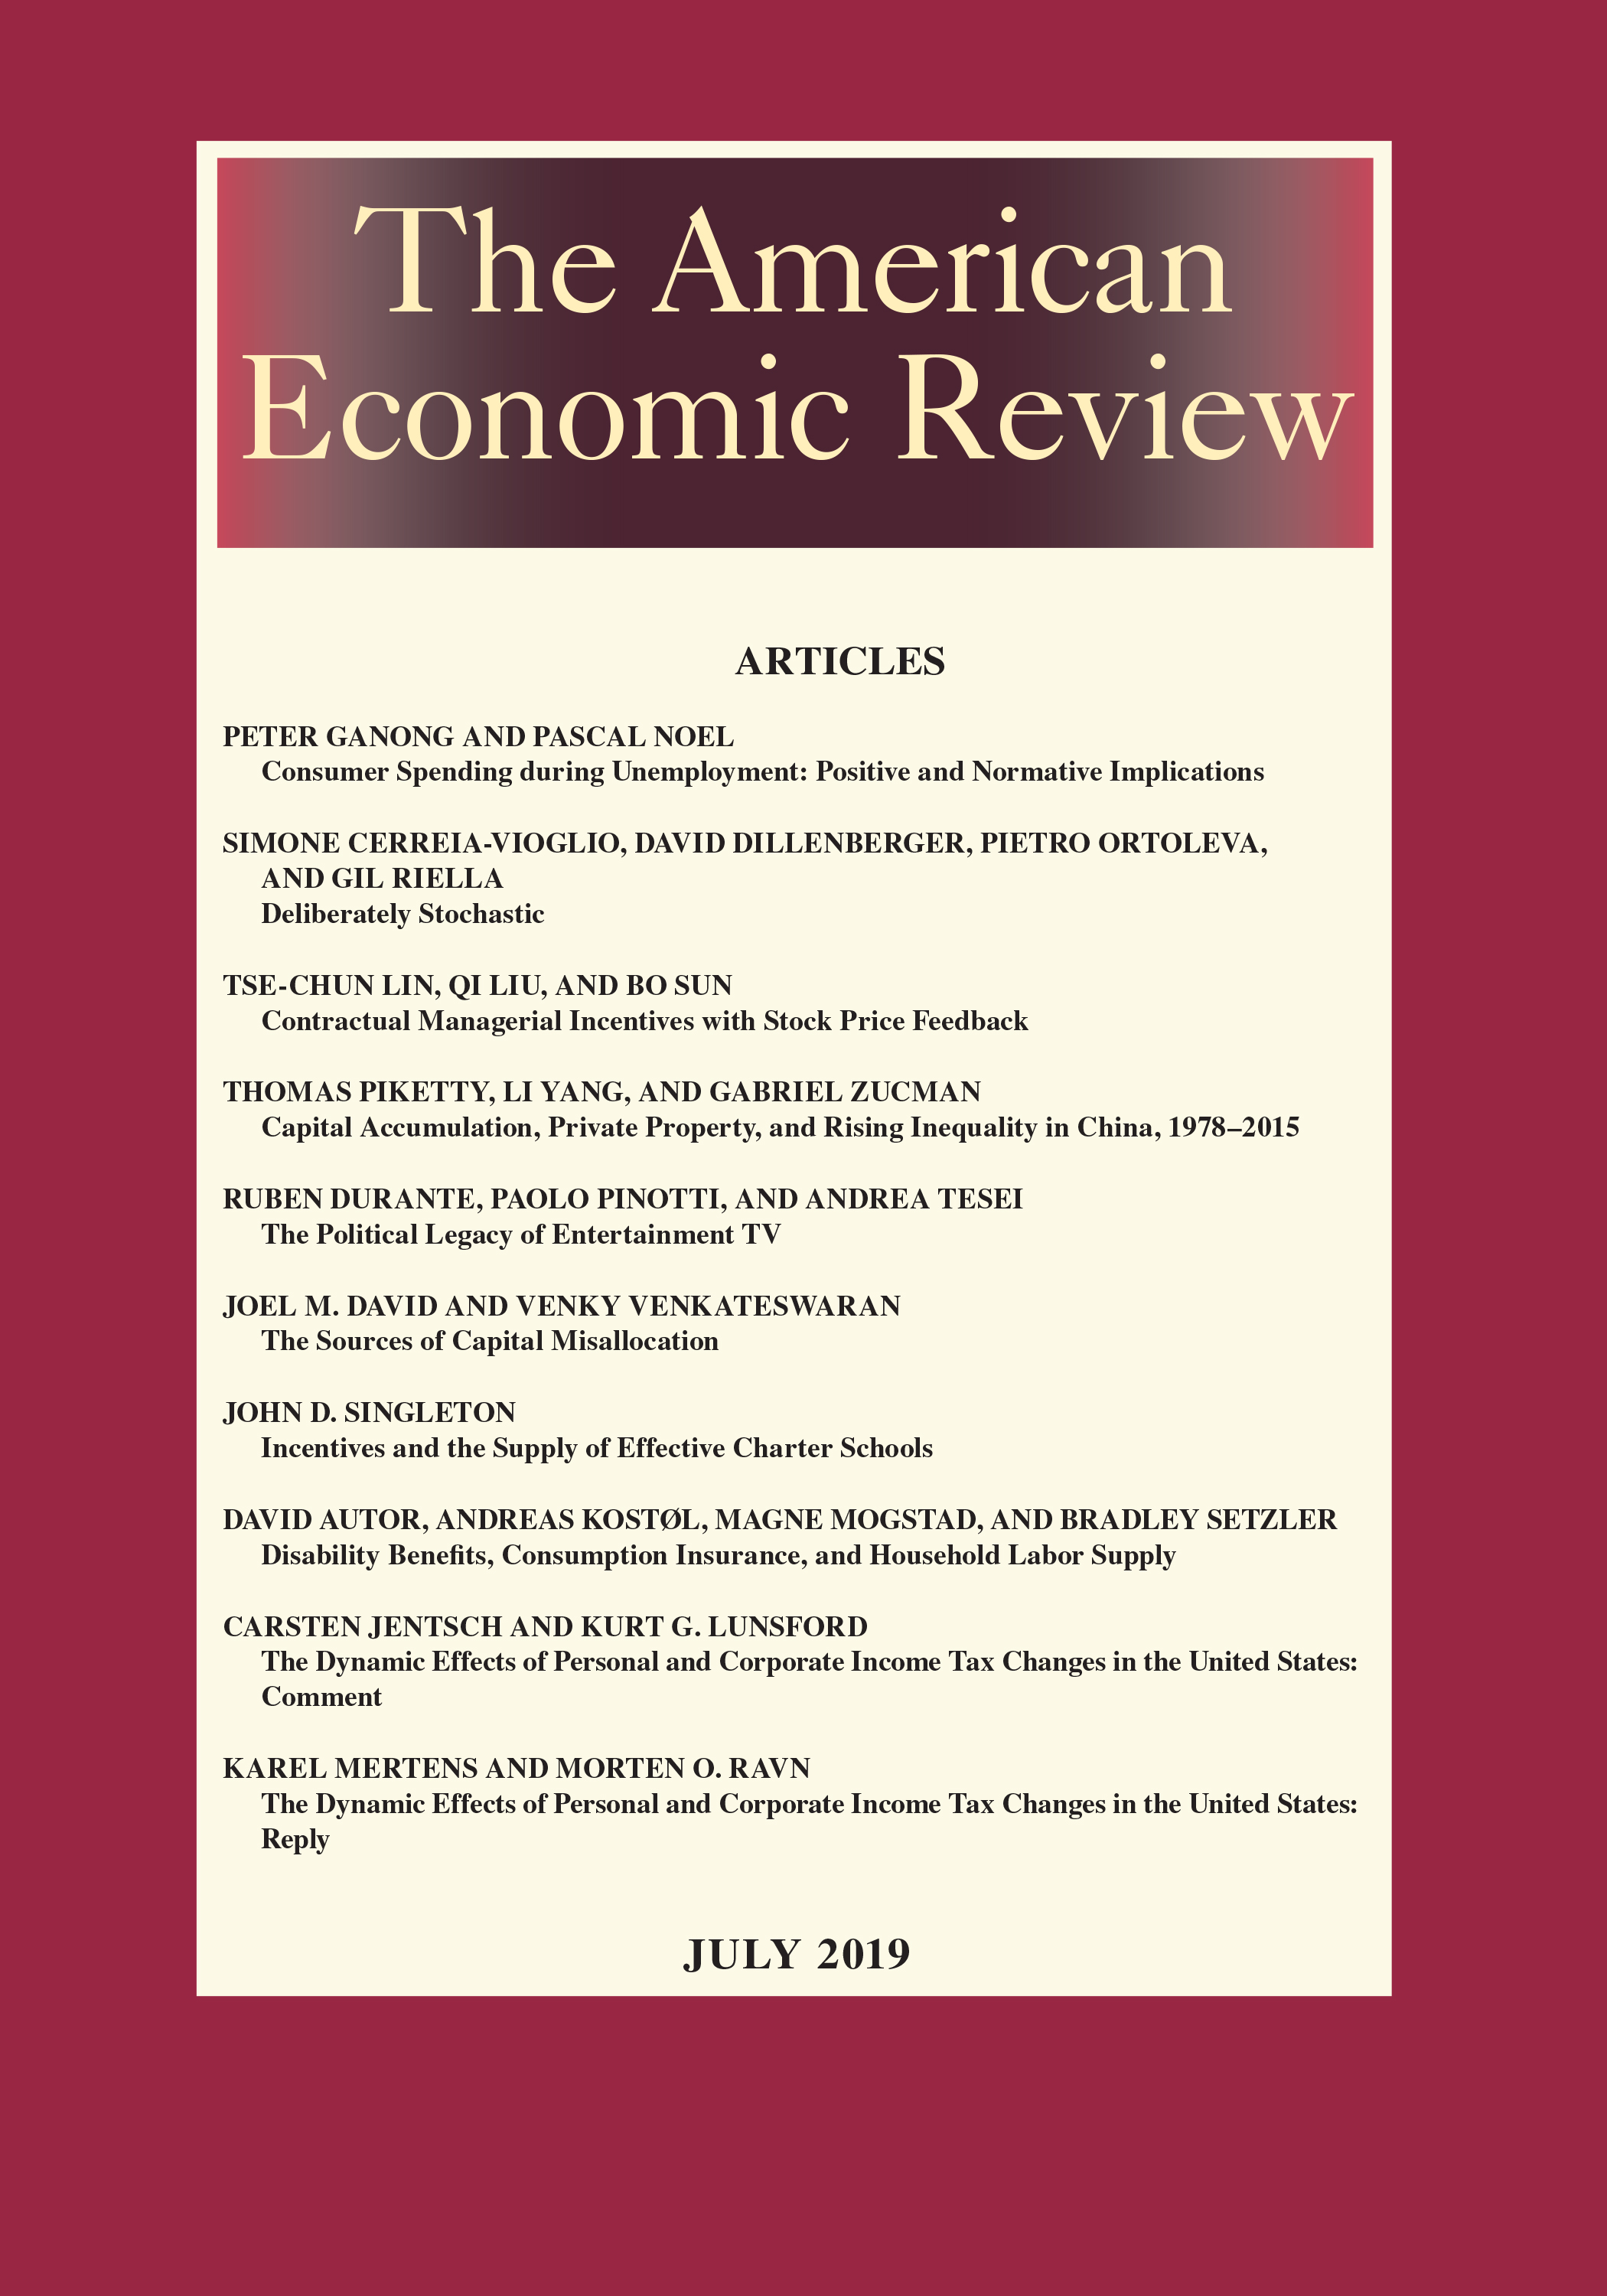 AMERICAN ECONOMIC REVIEW VOL. 109, NO. 7, JULY 2019